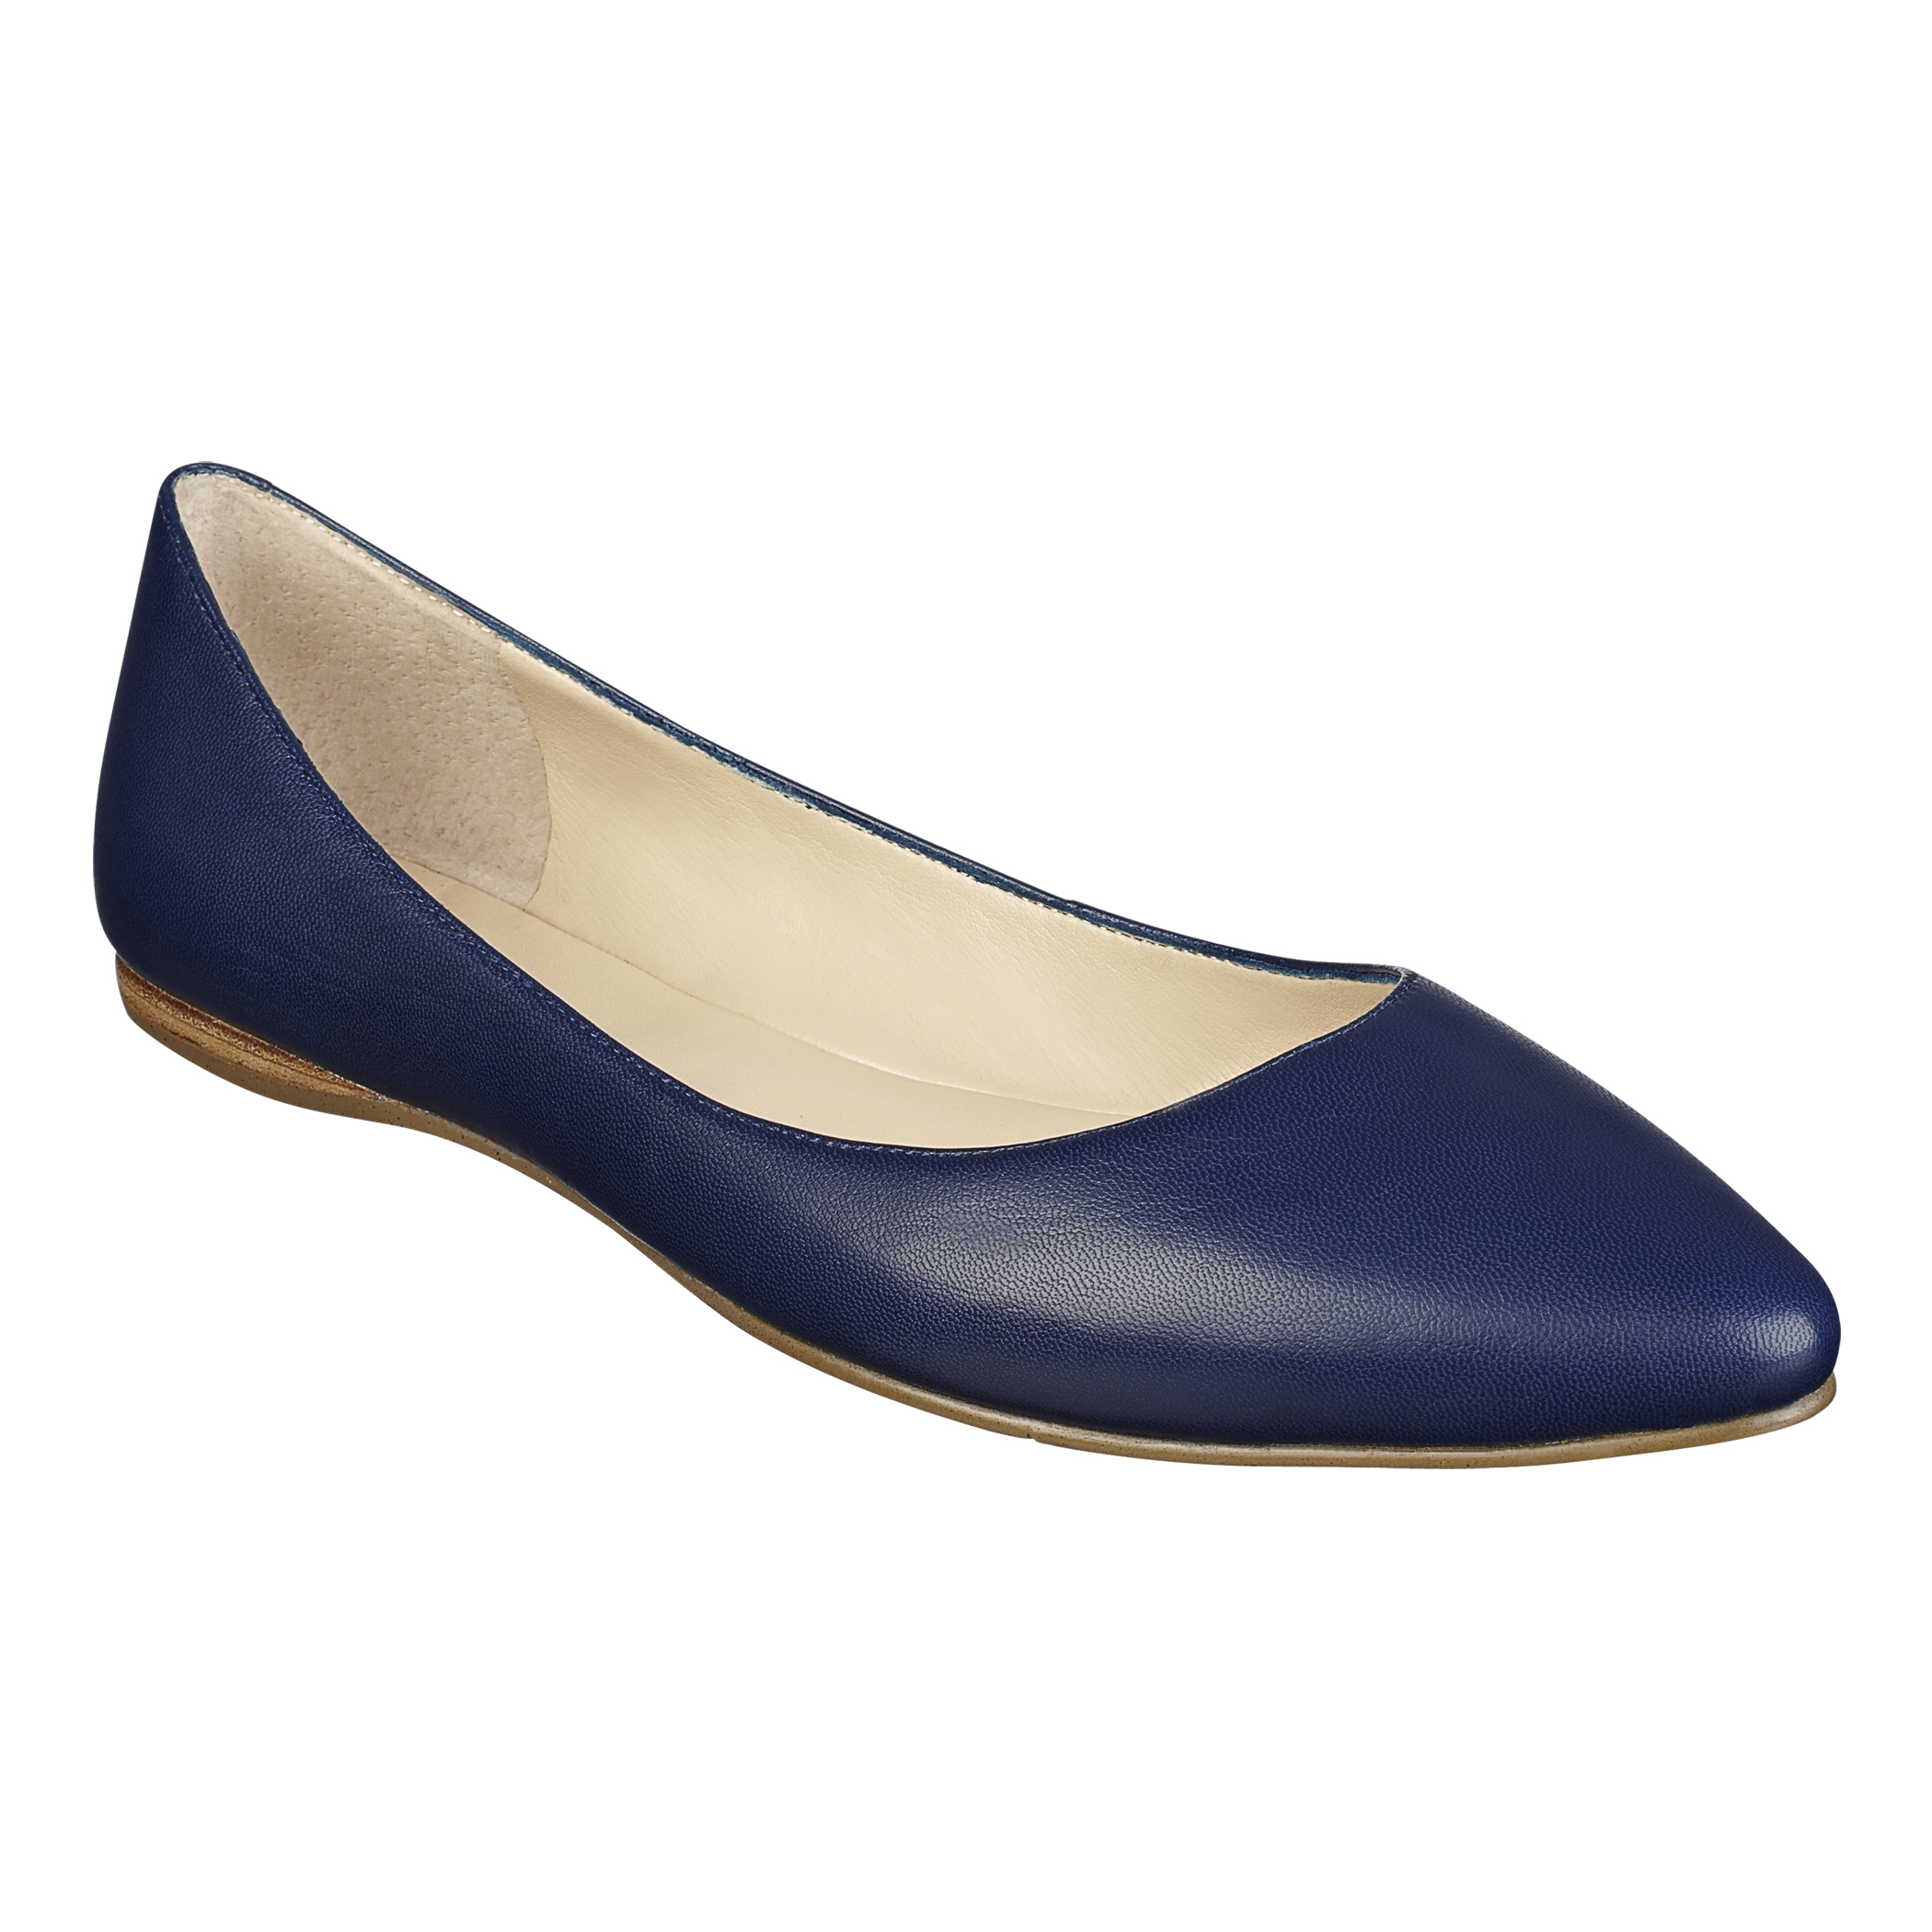 Find great deals on eBay for navy flats. Shop with confidence.